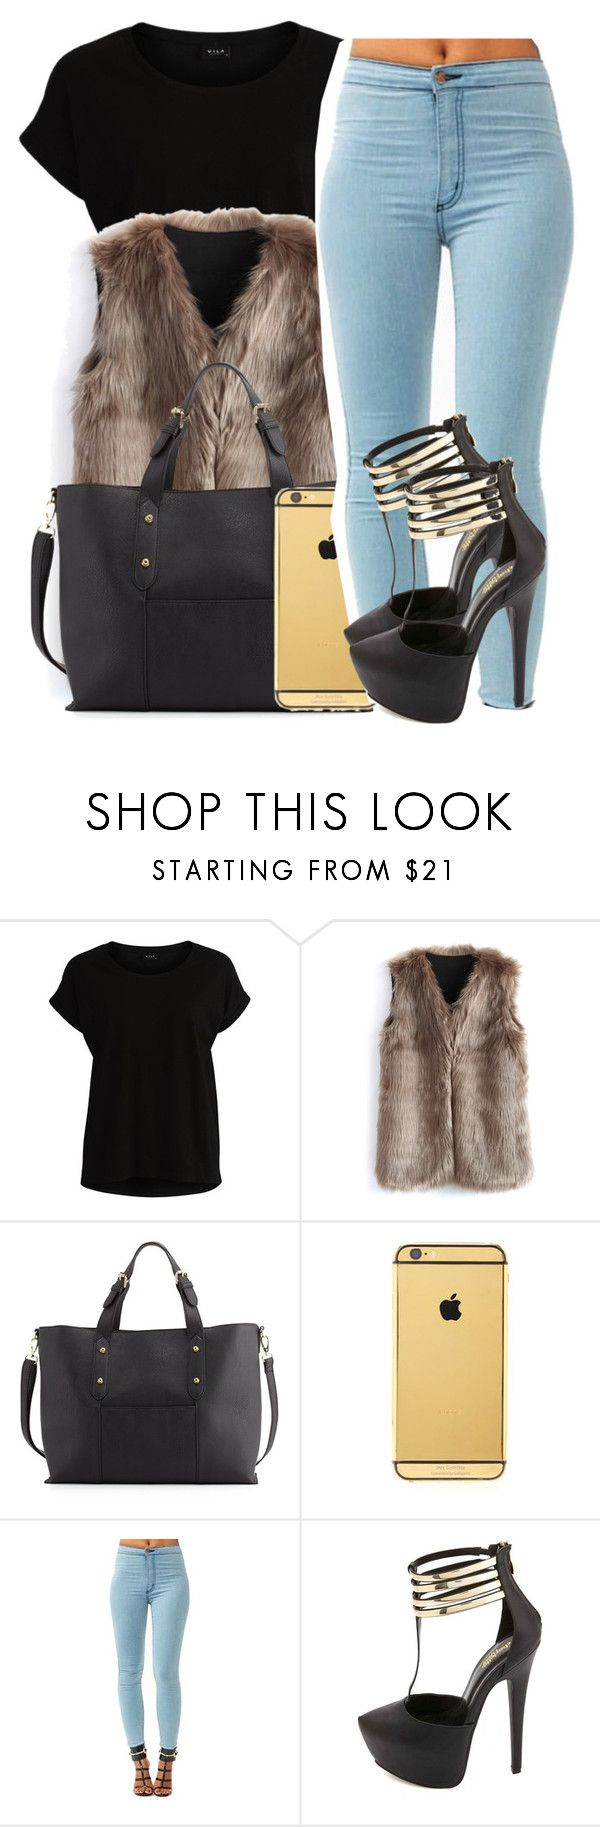 """✨NYFW✨"" by g0aldigger ❤ liked on Polyvore featuring VILA, Chicwish, Neiman Marcus, Goldgenie, Charlotte Russe, GetTheLook, NYFW and valentinesday"